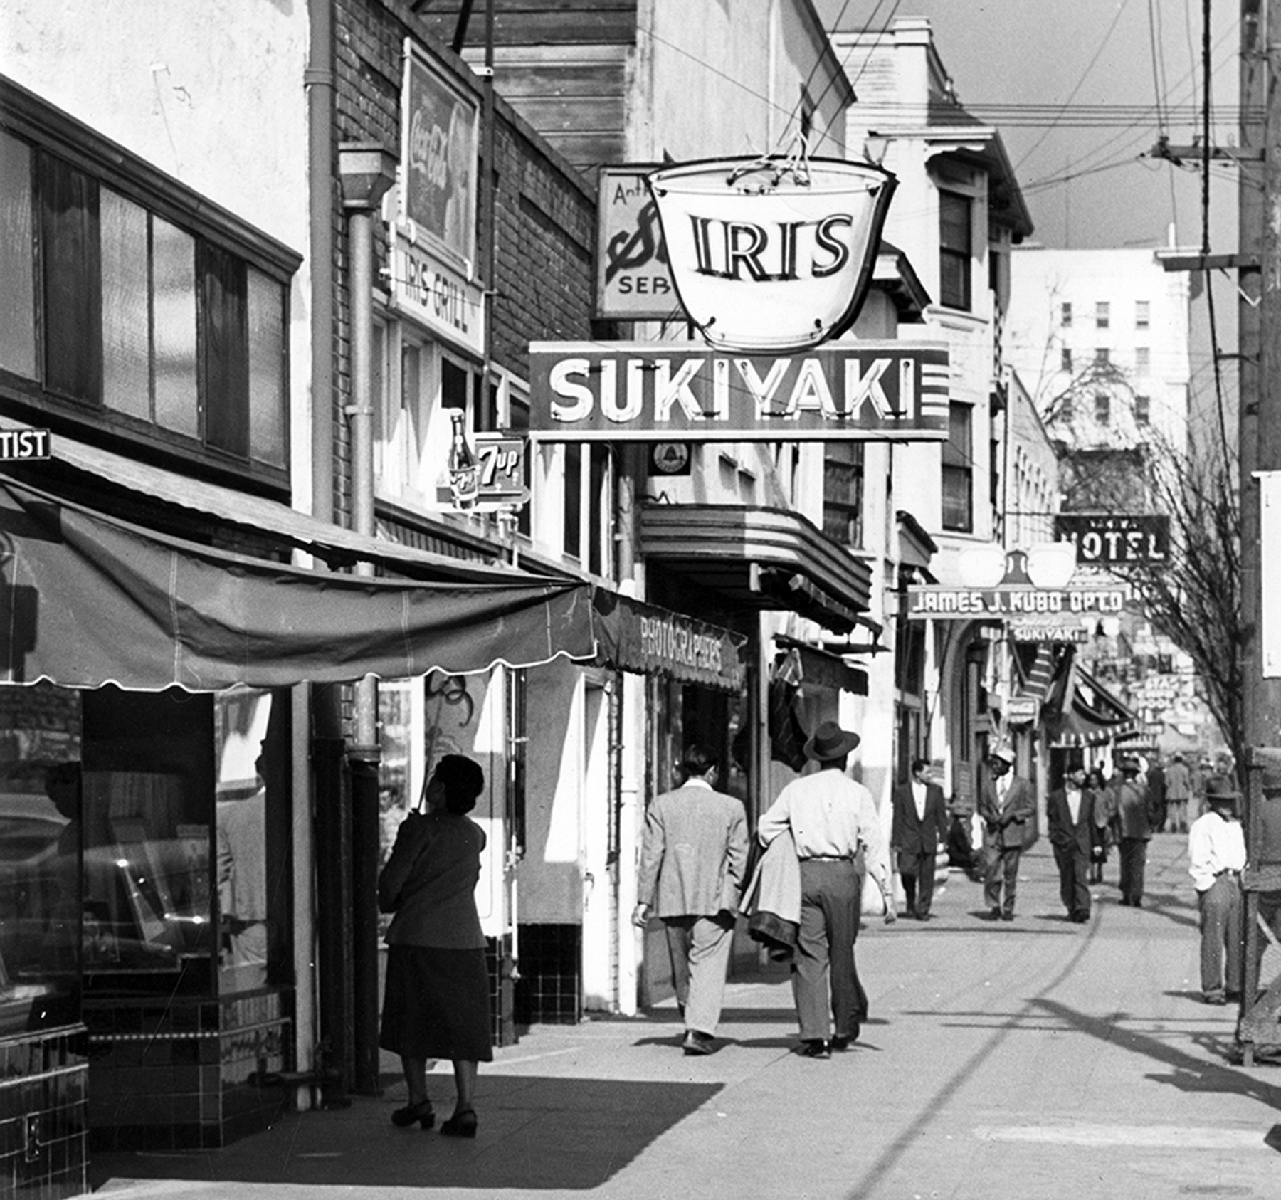 4thStBusinesses_ca1950s 3x4